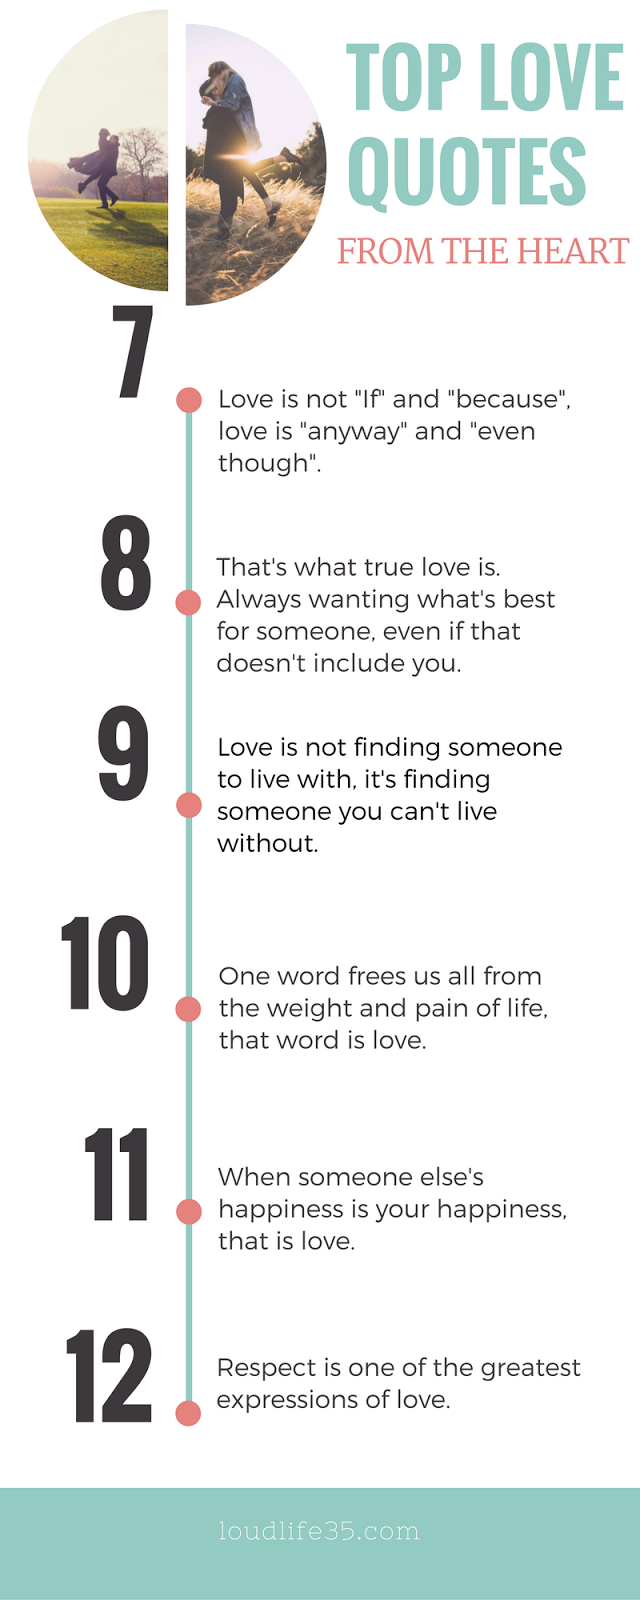 Expressions Of Love Quotes 30 Top Love Quotes From The Heart  Loud Life